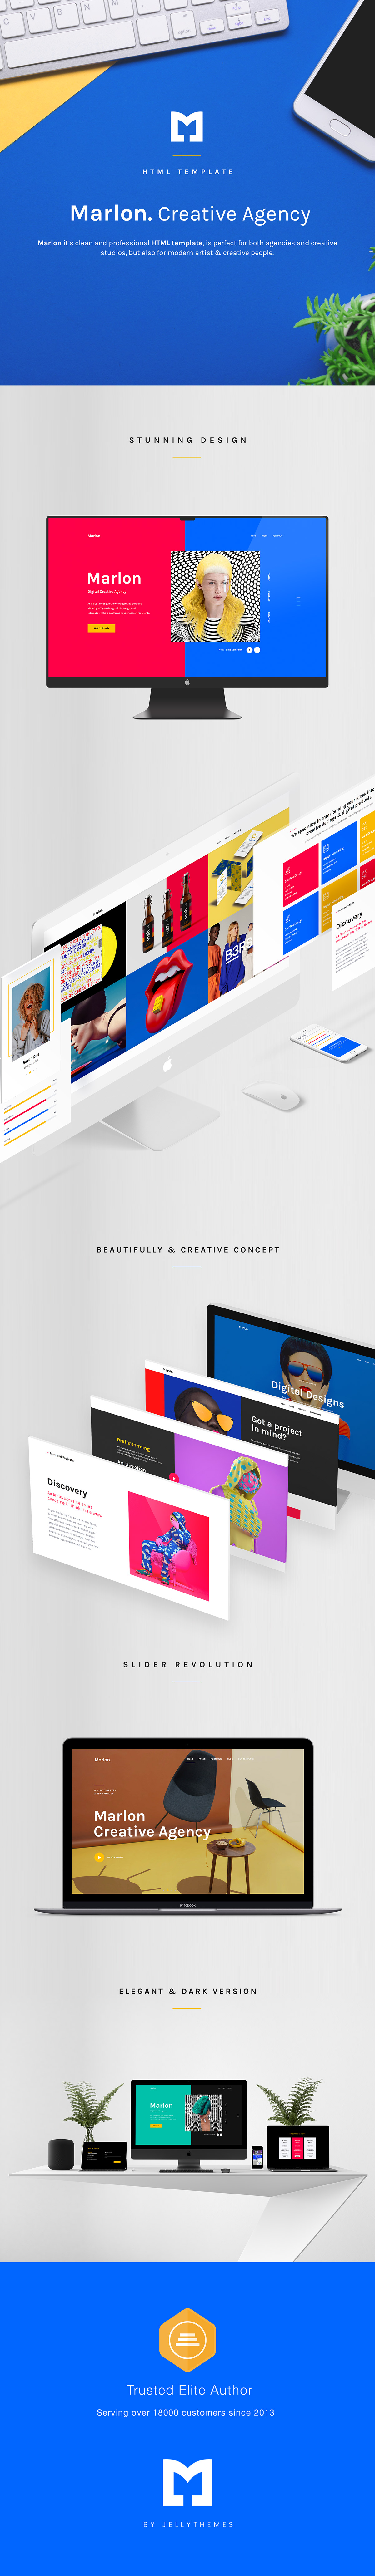 Marvin - Creative Agency Portfolio HTML Template - 1